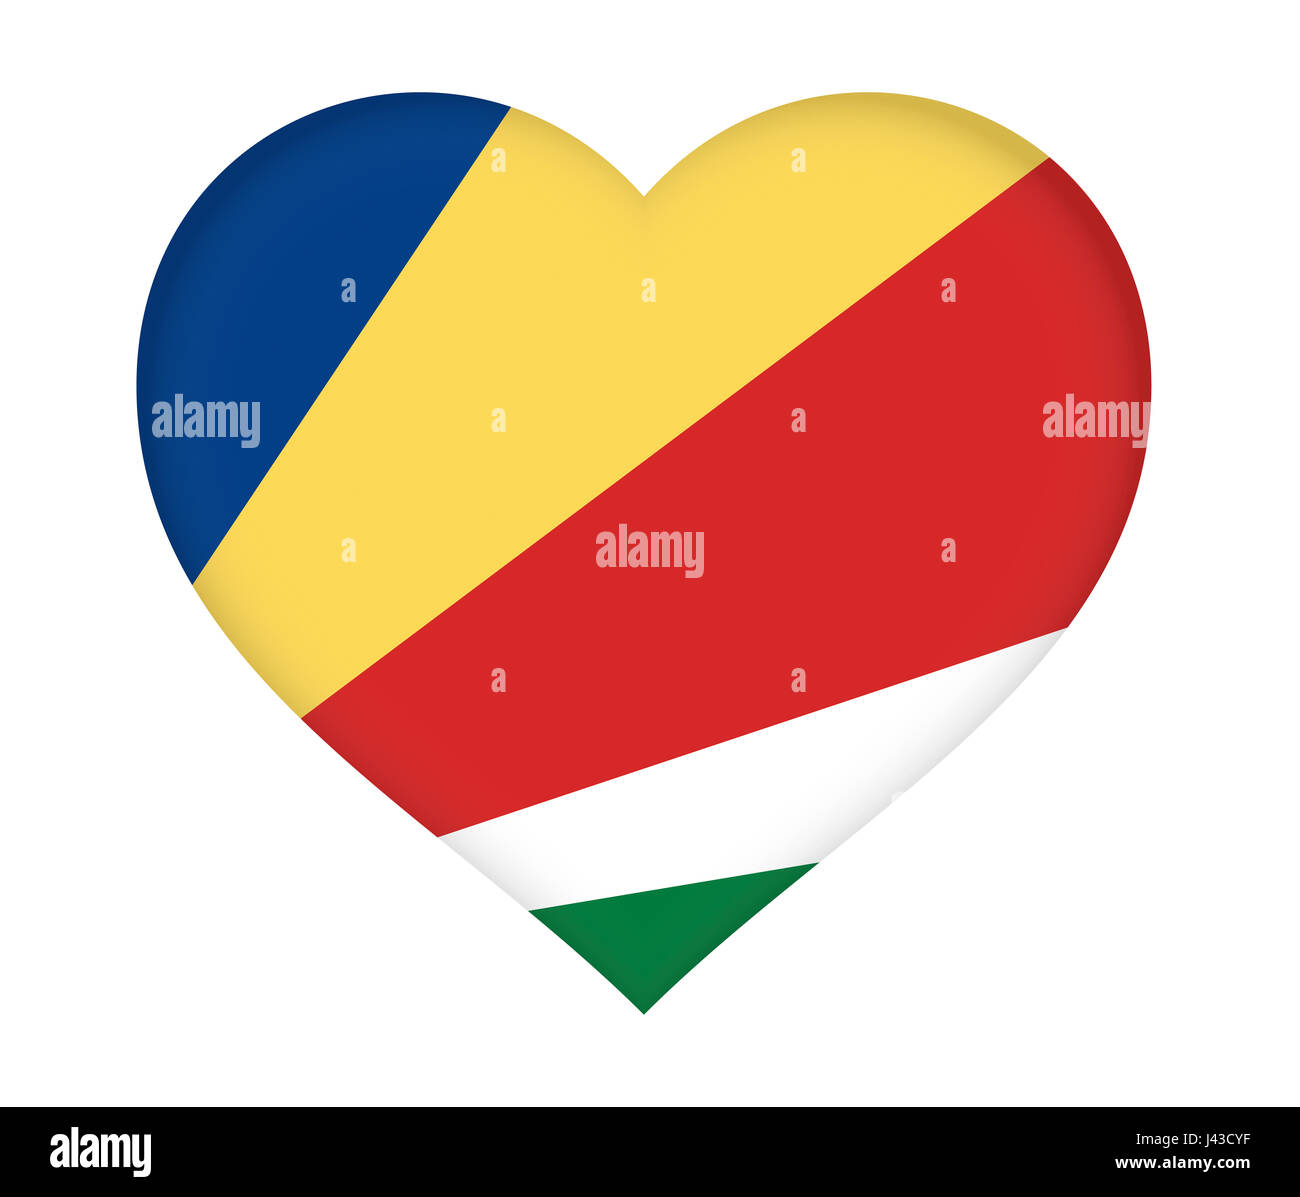 Illustration of the flag of Seychelles shaped like a heart. - Stock Image